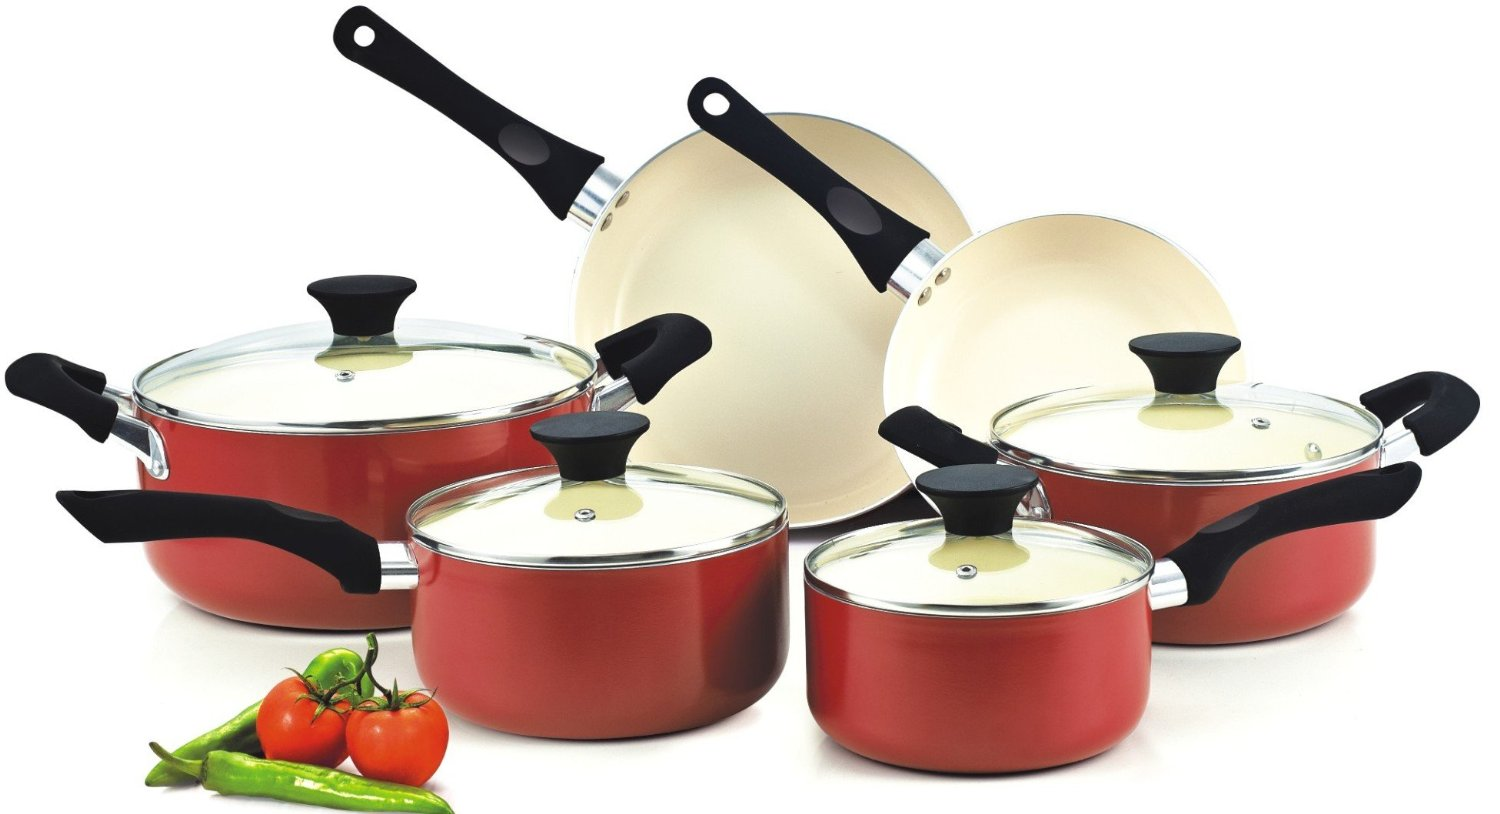 Is ceramic cookware safe to use?